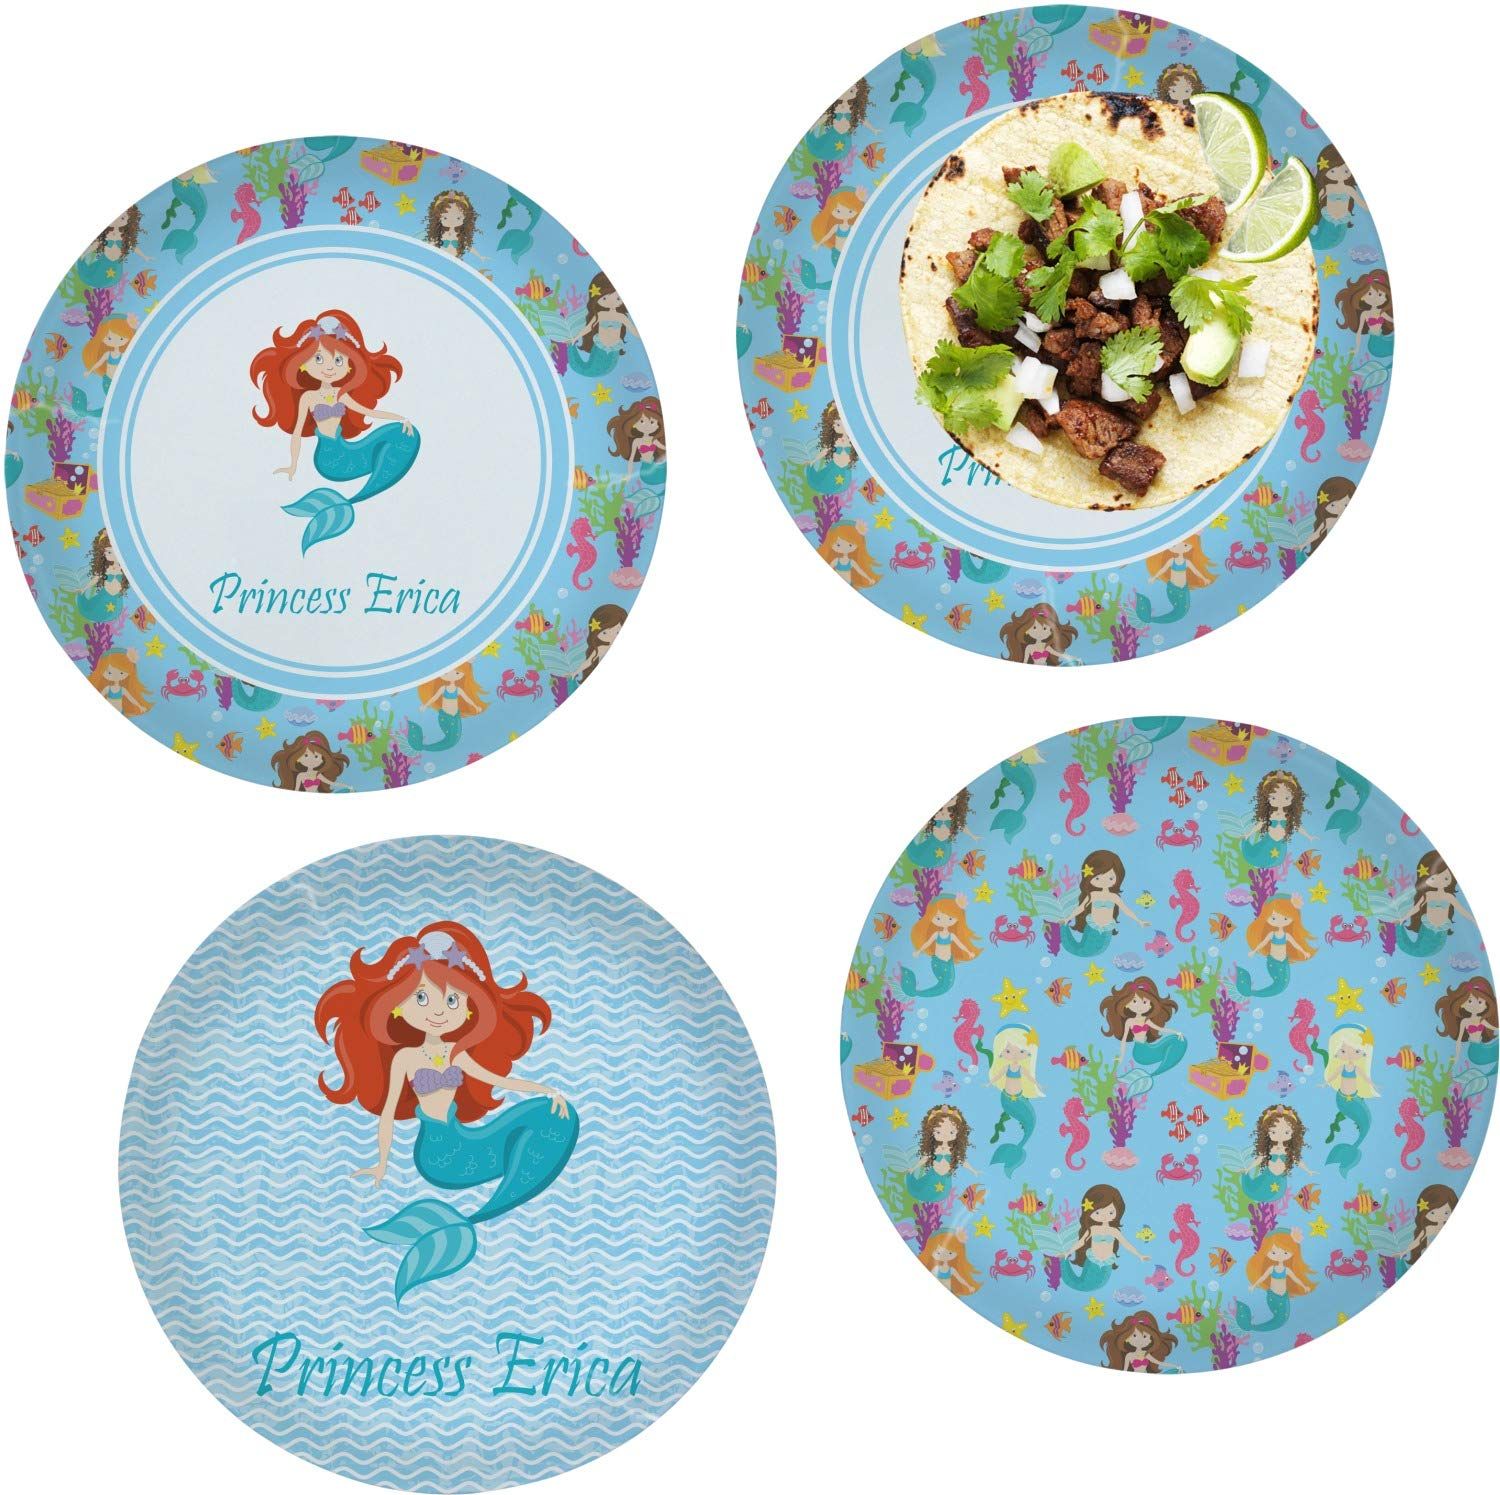 Mermaids Set of 4 Glass Lunch/Dinner Plate 10'' (Personalized)